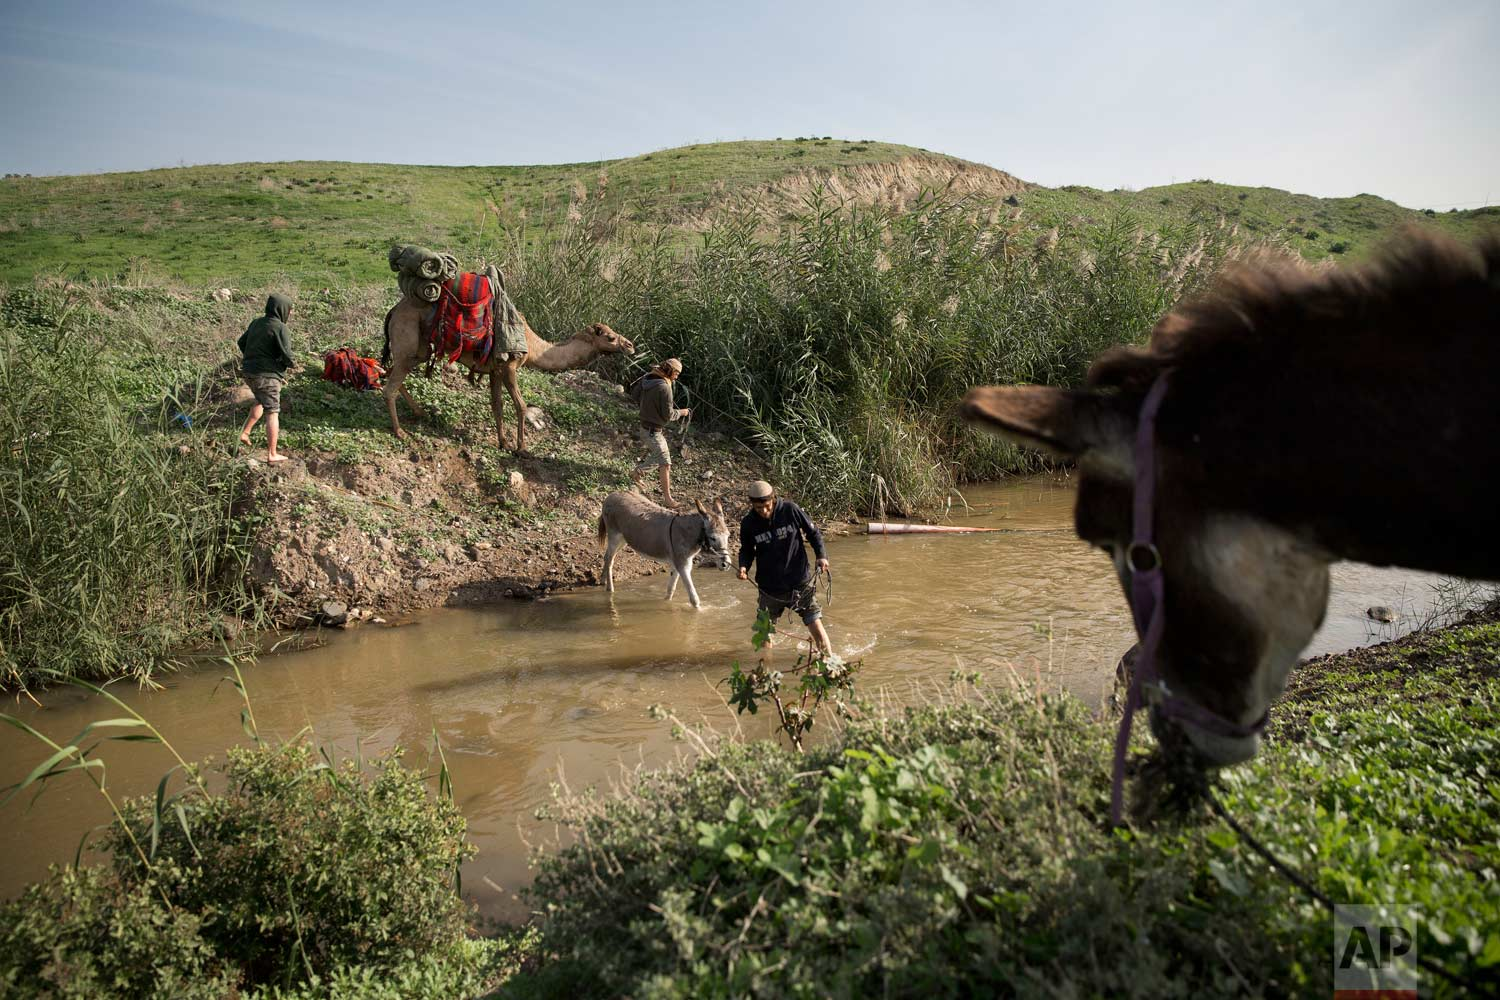 In this Tuesday, Jan. 17, 2017 photo, Israelis cross the Jordan River as part of their tour near the Israeli village of Menahemia. (AP Photo/Oded Balilty)